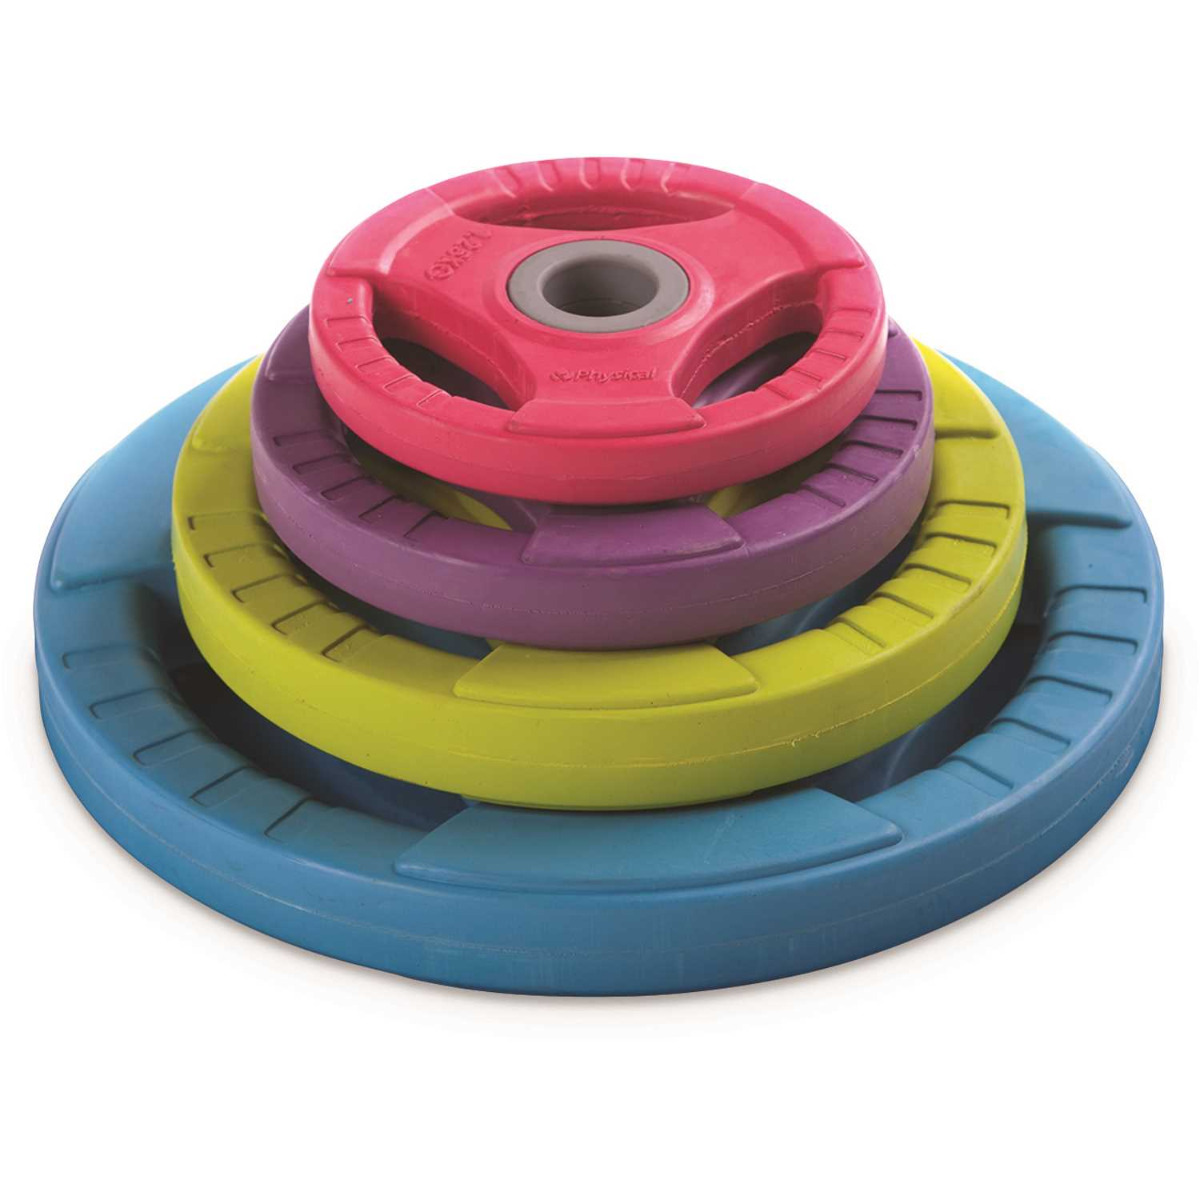 2.5kg Rubber Weight Discs 30mm - Purple